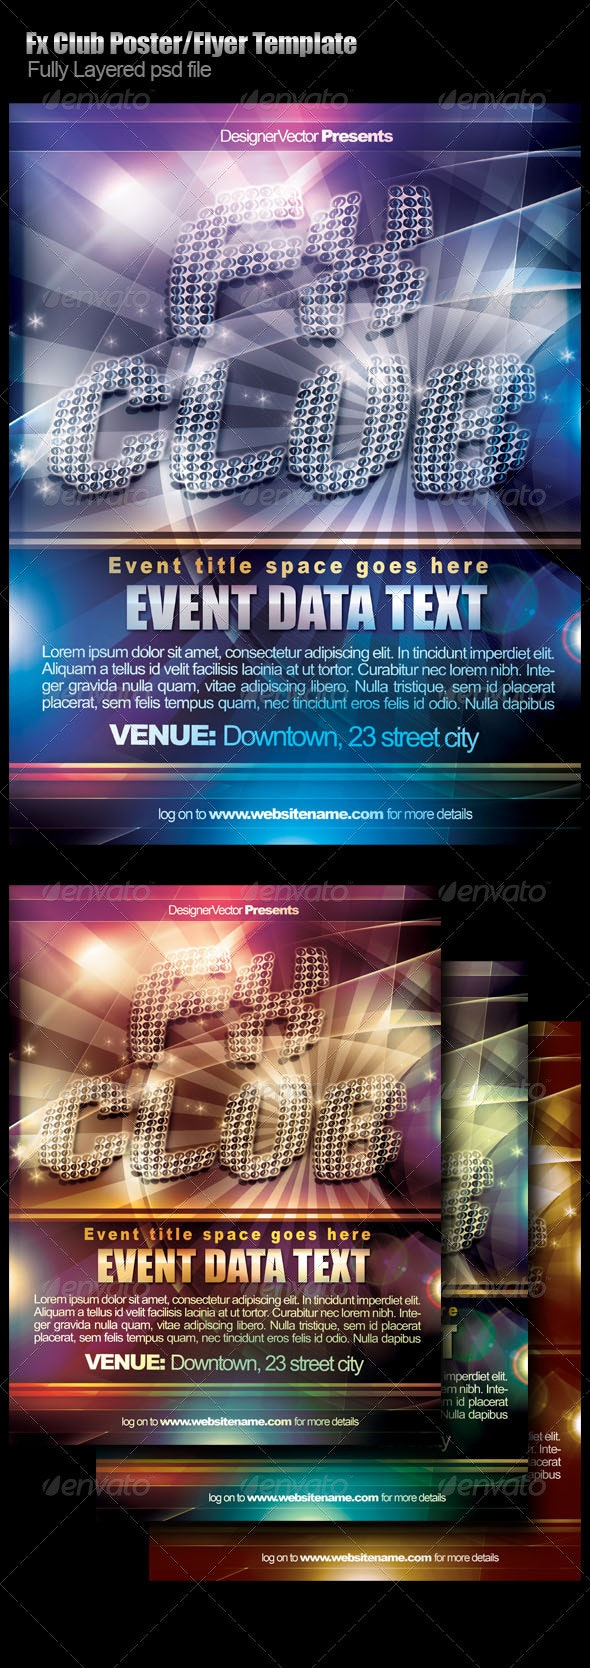 Fx Club Flyer/Poster Template - Clubs & Parties Events